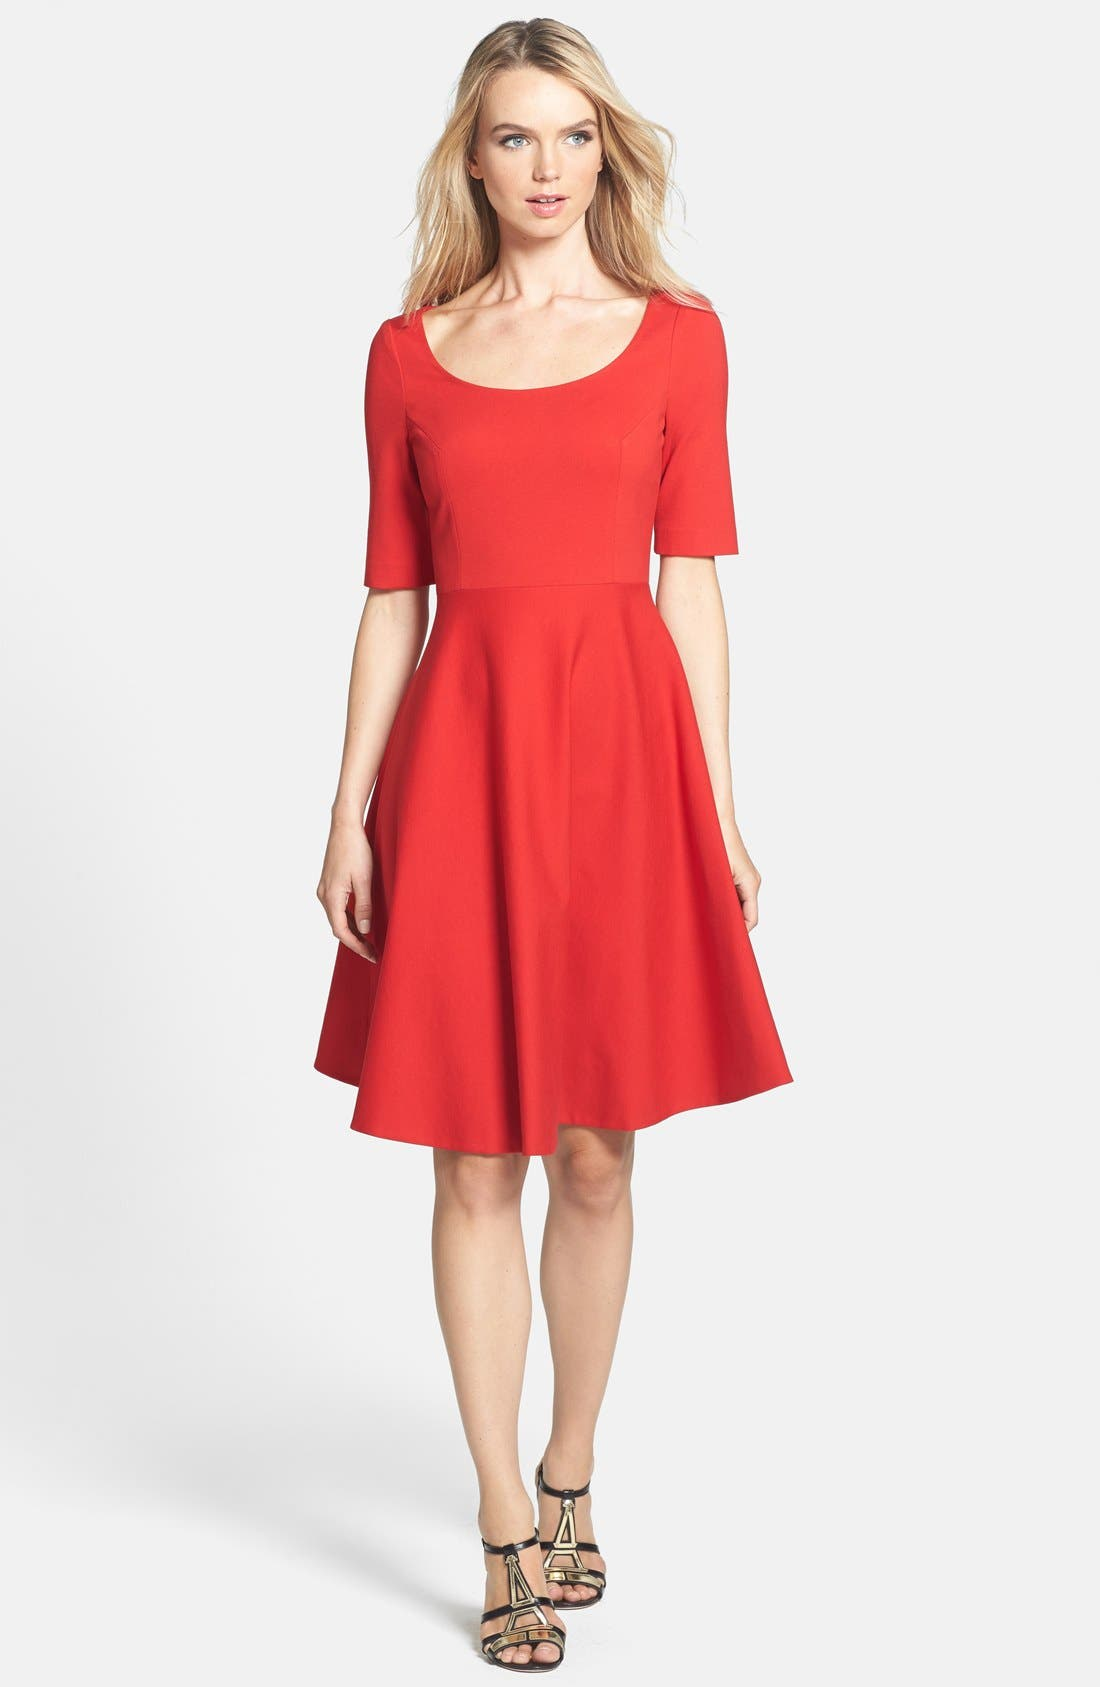 Main Image - kate spade new york 'jada' stretch fit & flare dress